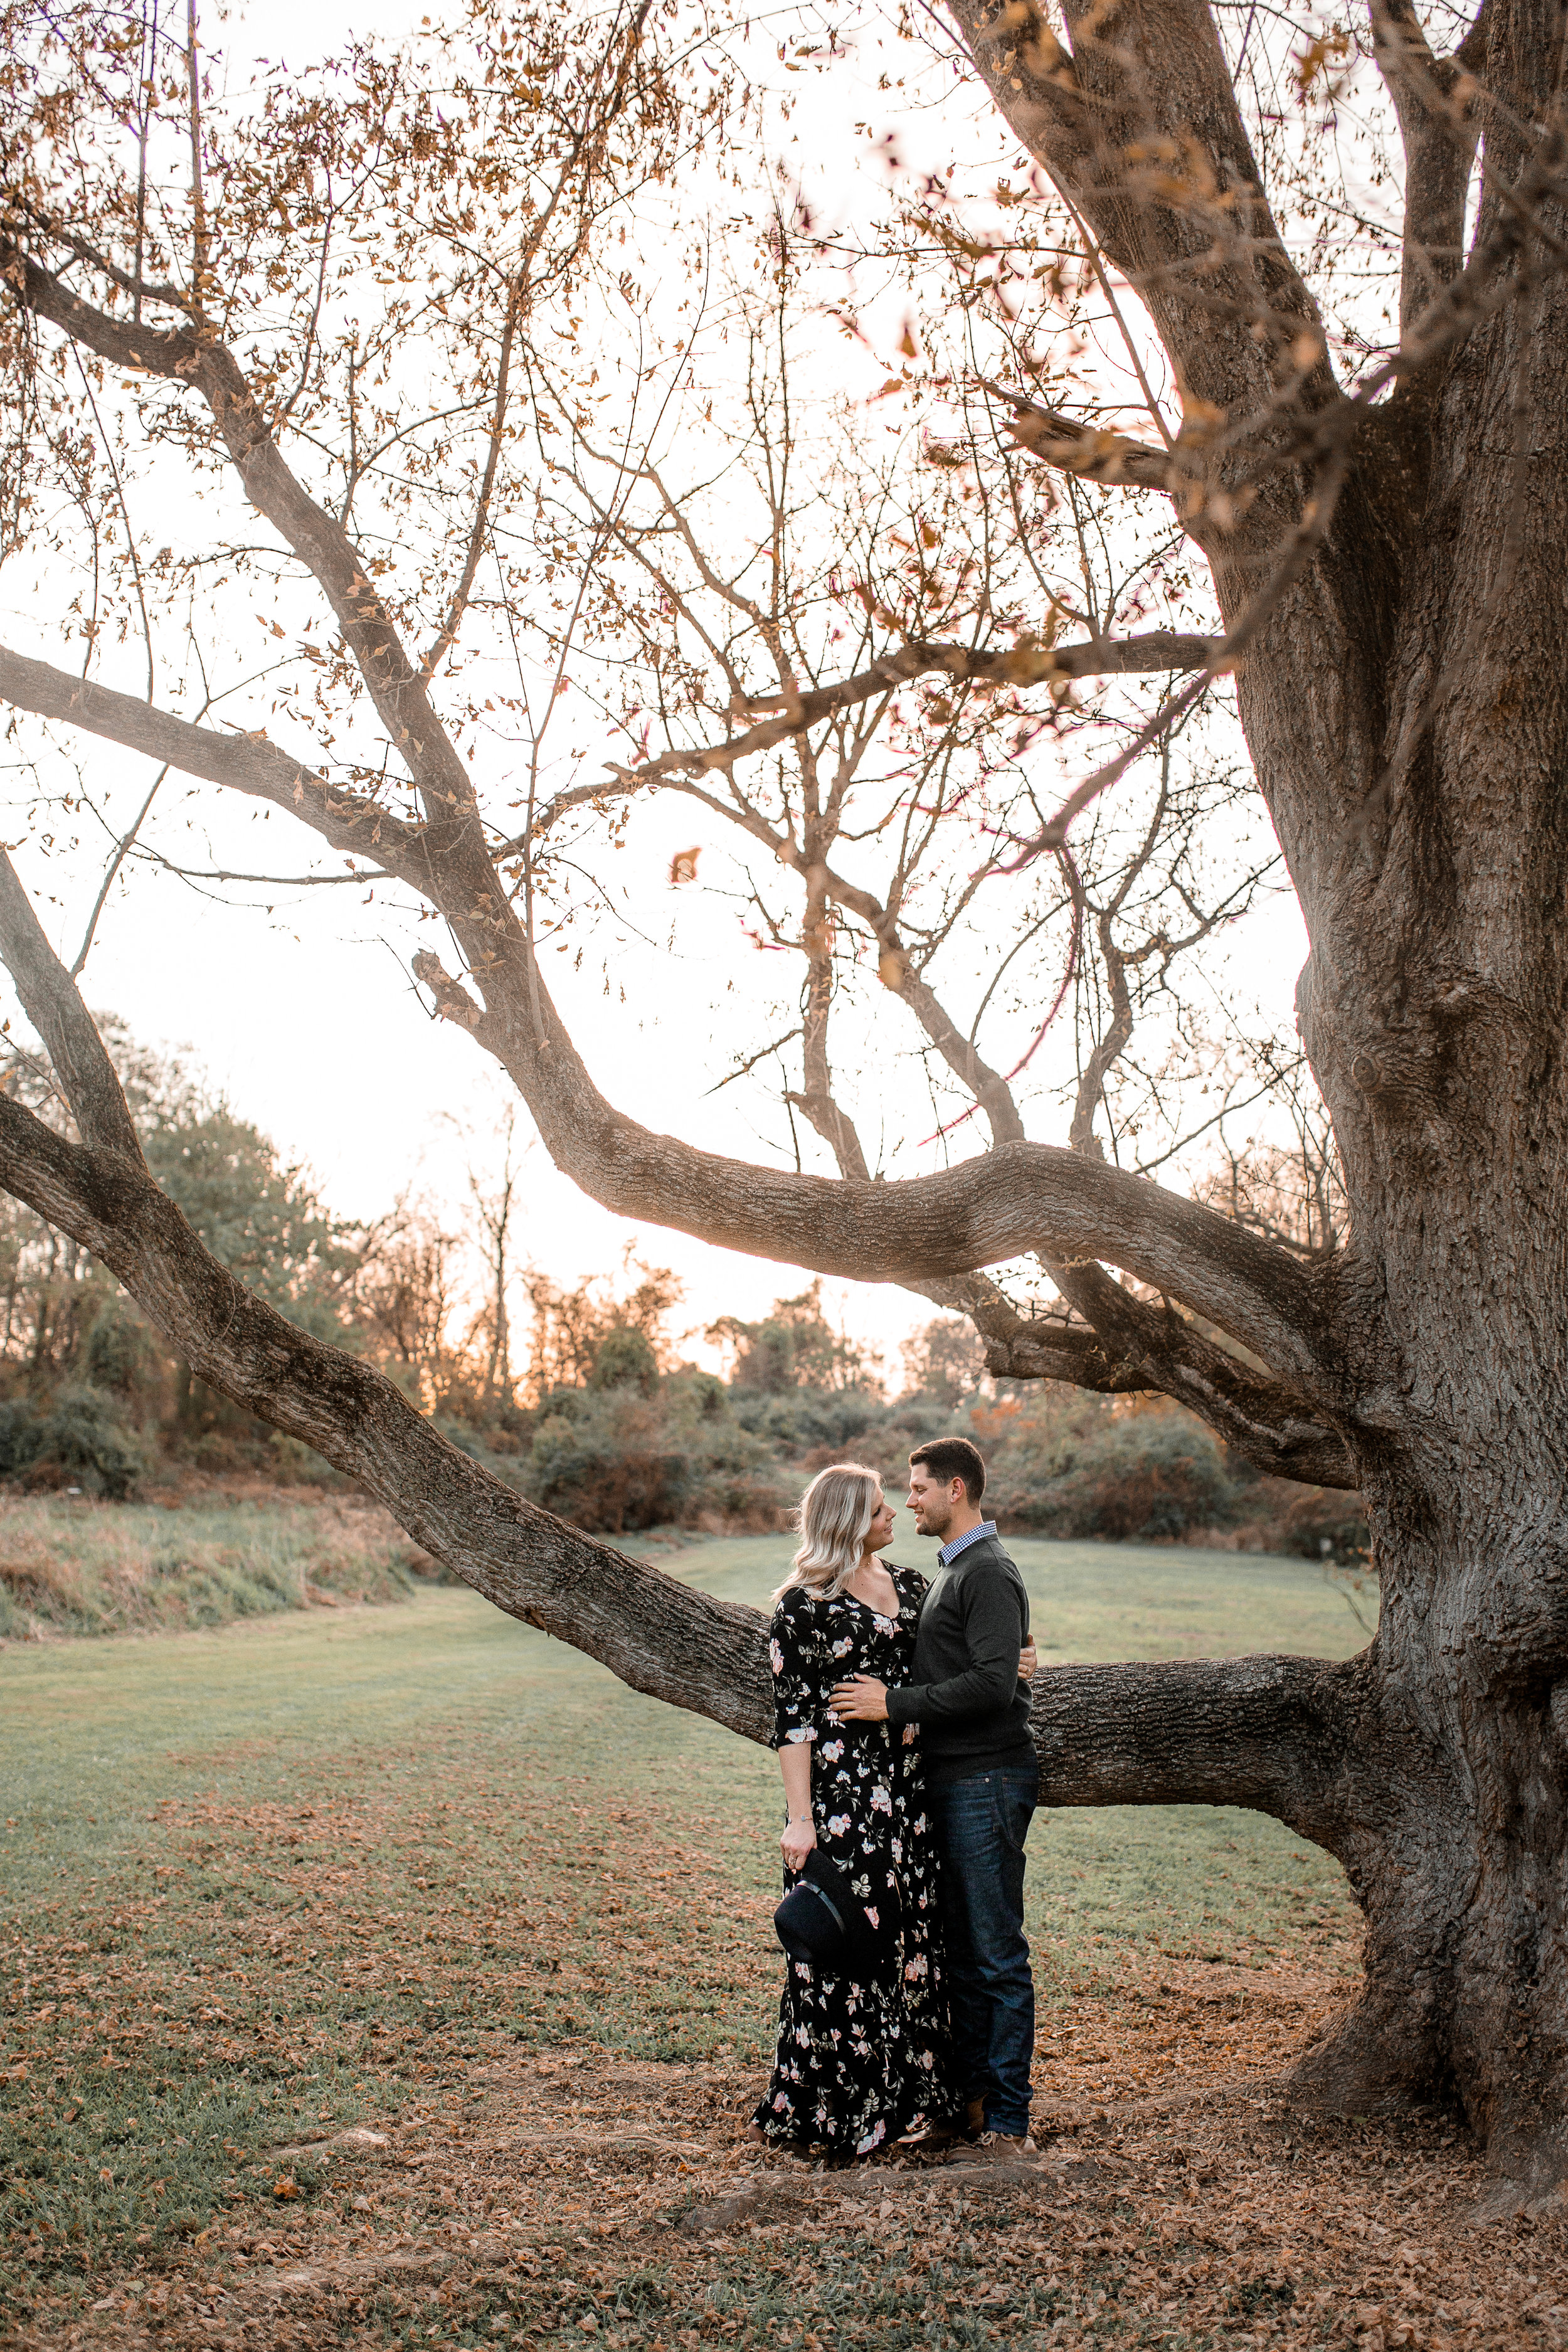 nicole-daacke-photography-carefree-bohemian-lancaster-pa-pennsylvania-engagement-photos-engagement-session-golden-sunset-adventure-session-in-lancaster-pa-lancaster-pa-outdoor-wedding-photographer-25.jpg